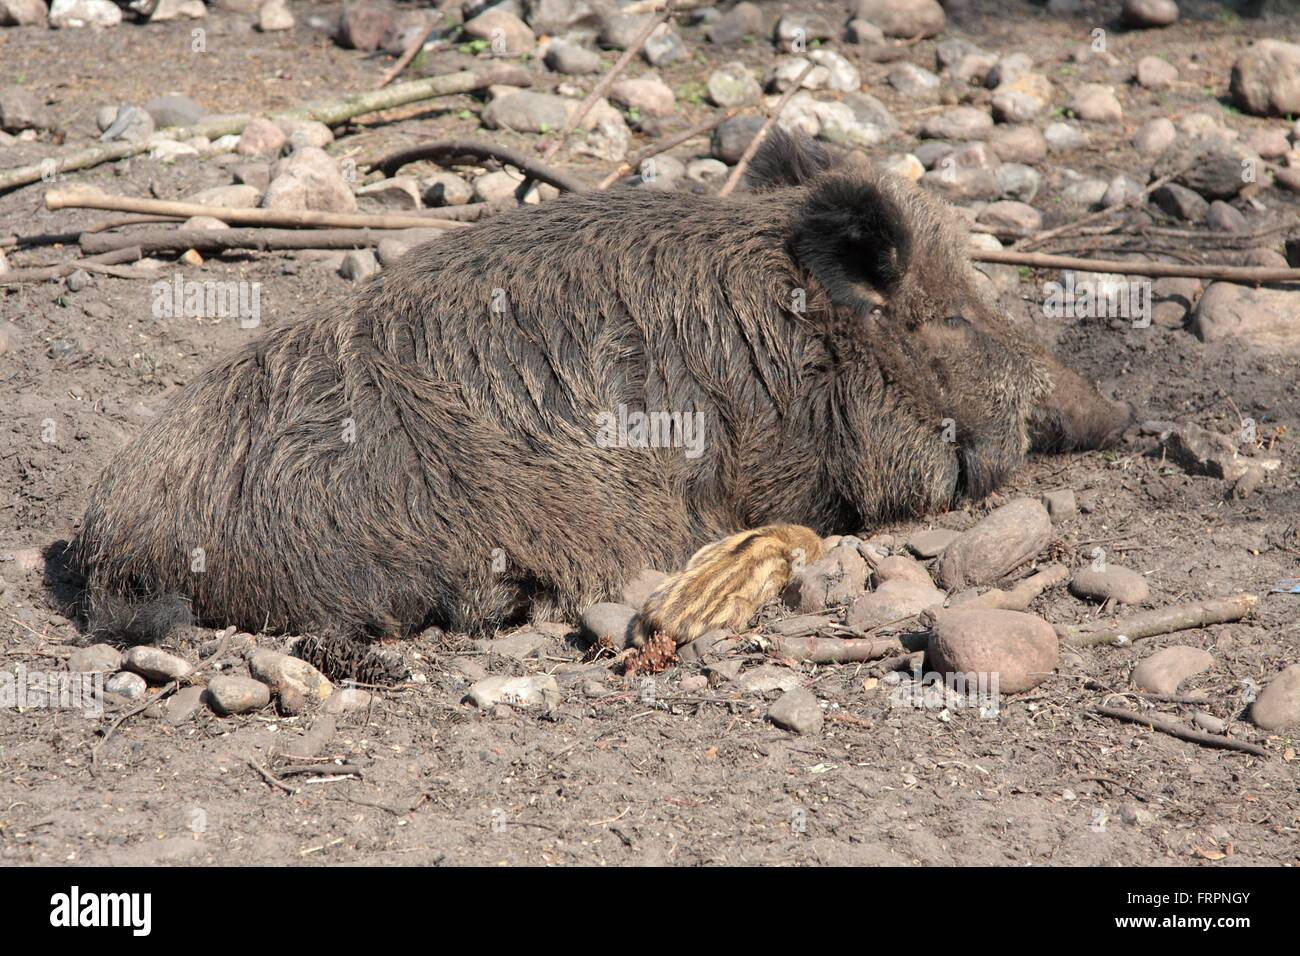 A female Wild boar with young boars. The wild boar (Sus scrofa) belongs to the family of the Real pigs (Suidae) - Stock Image